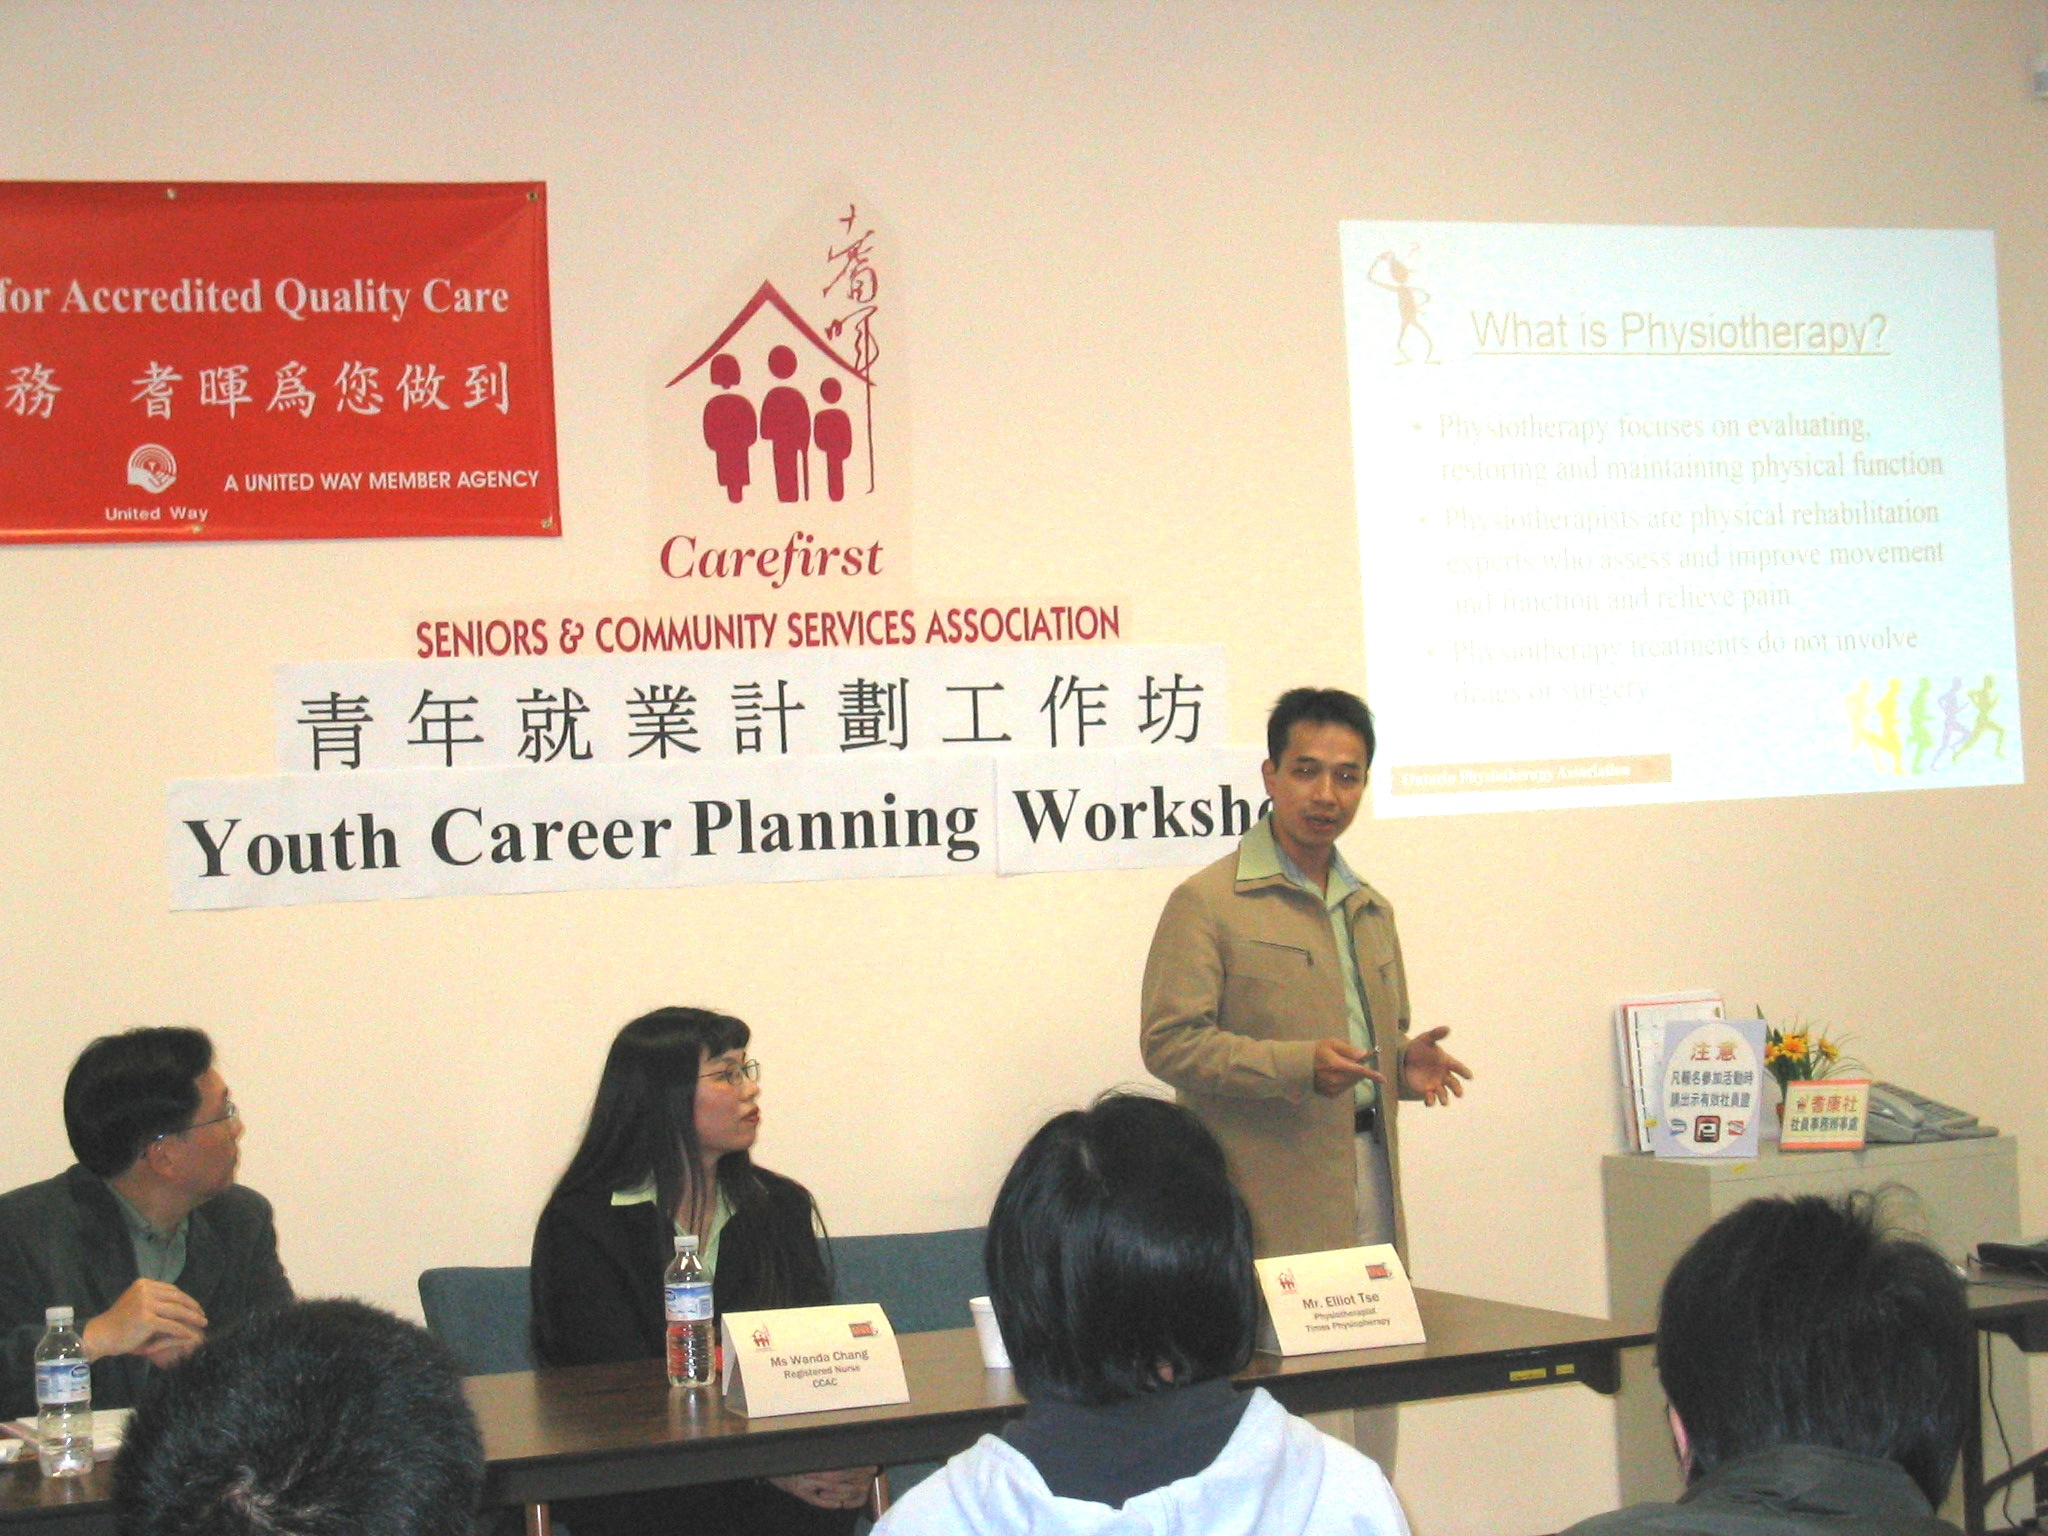 Carefirst Youth Career Planning Workshop 2005